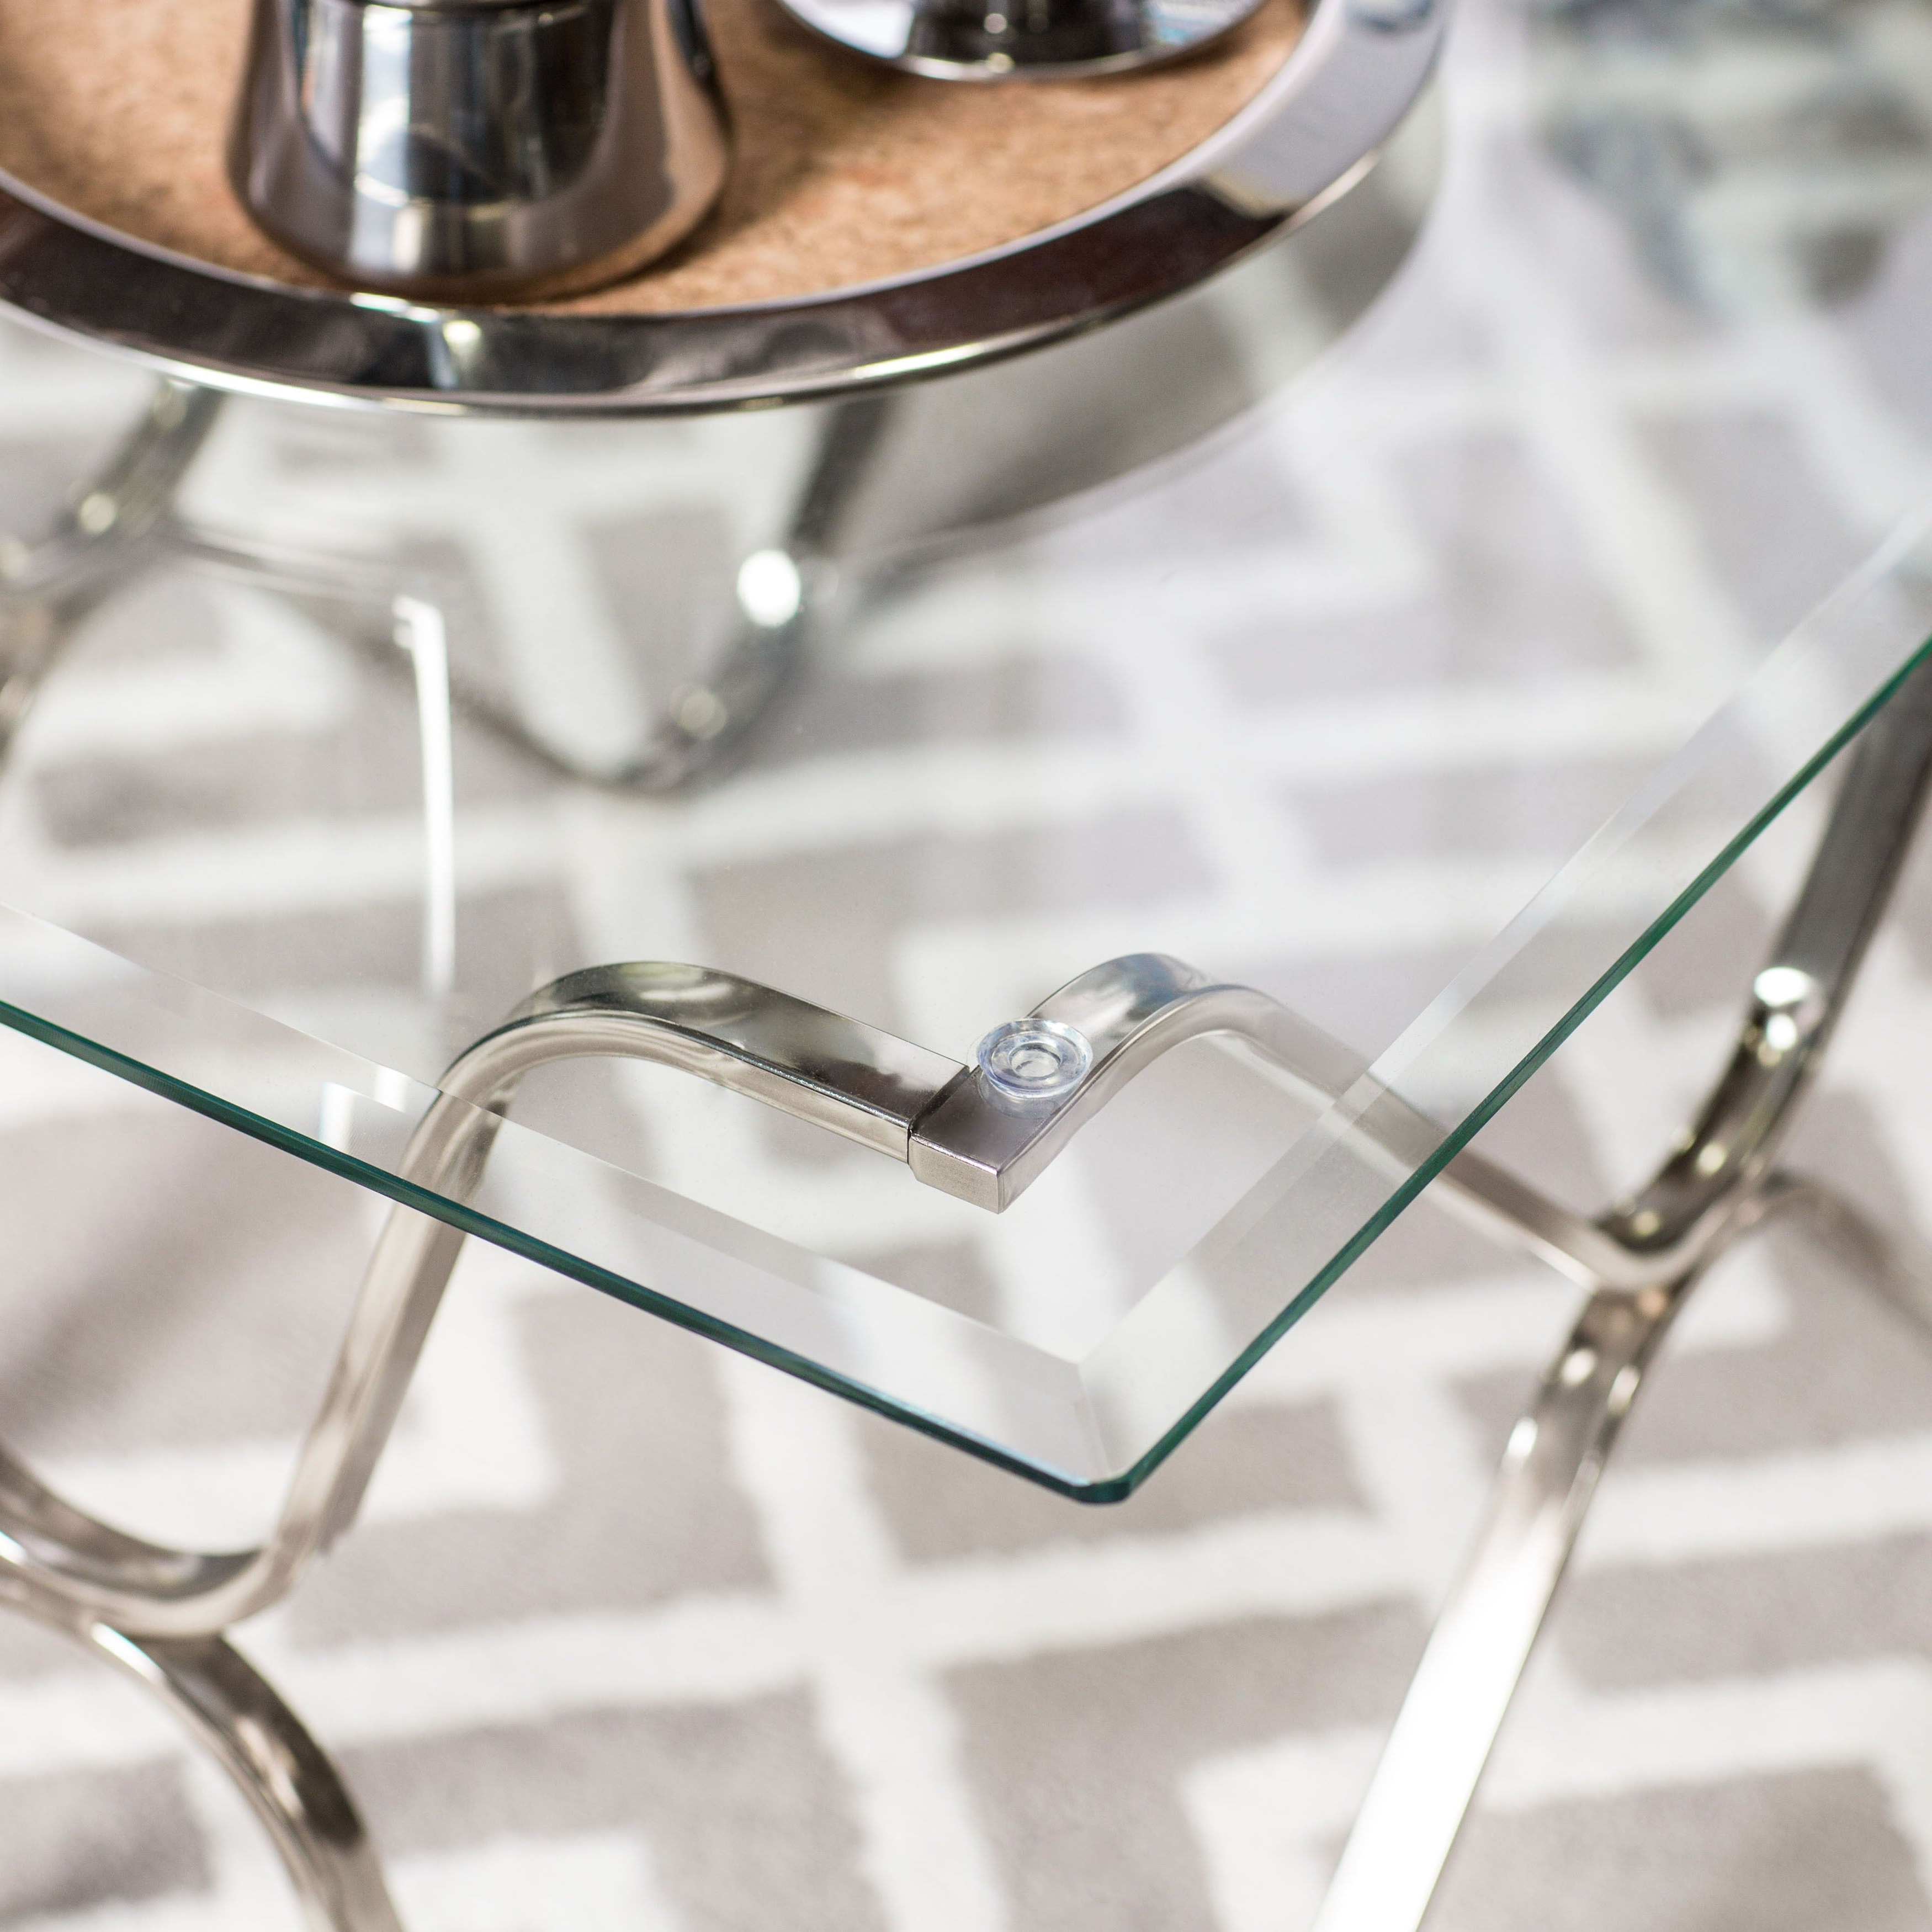 Furniture Of America Tellarie Contemporary Chrome Coffee Table – Silver Inside Most Up To Date Furniture Of America Tellarie Contemporary Chrome Coffee Tables (View 6 of 20)